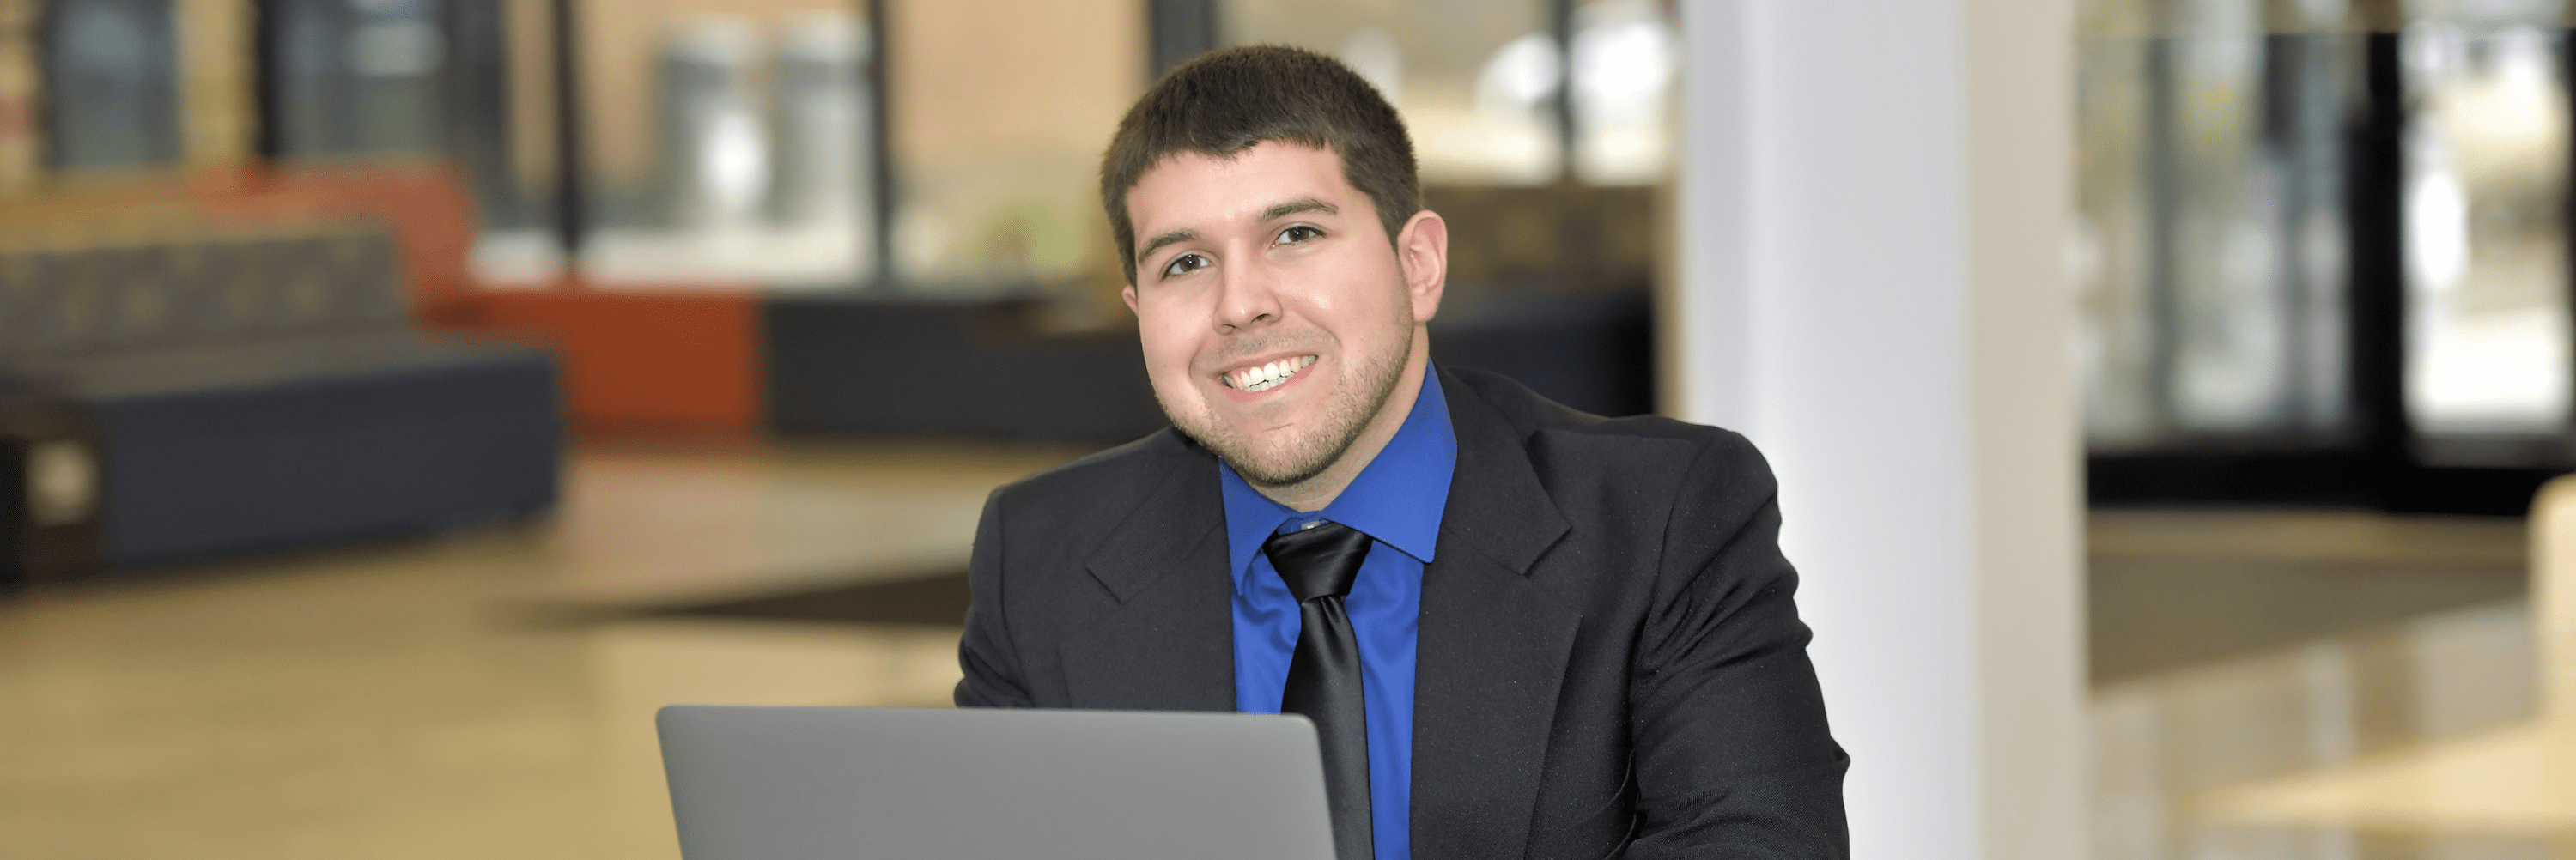 Young professional male at laptop